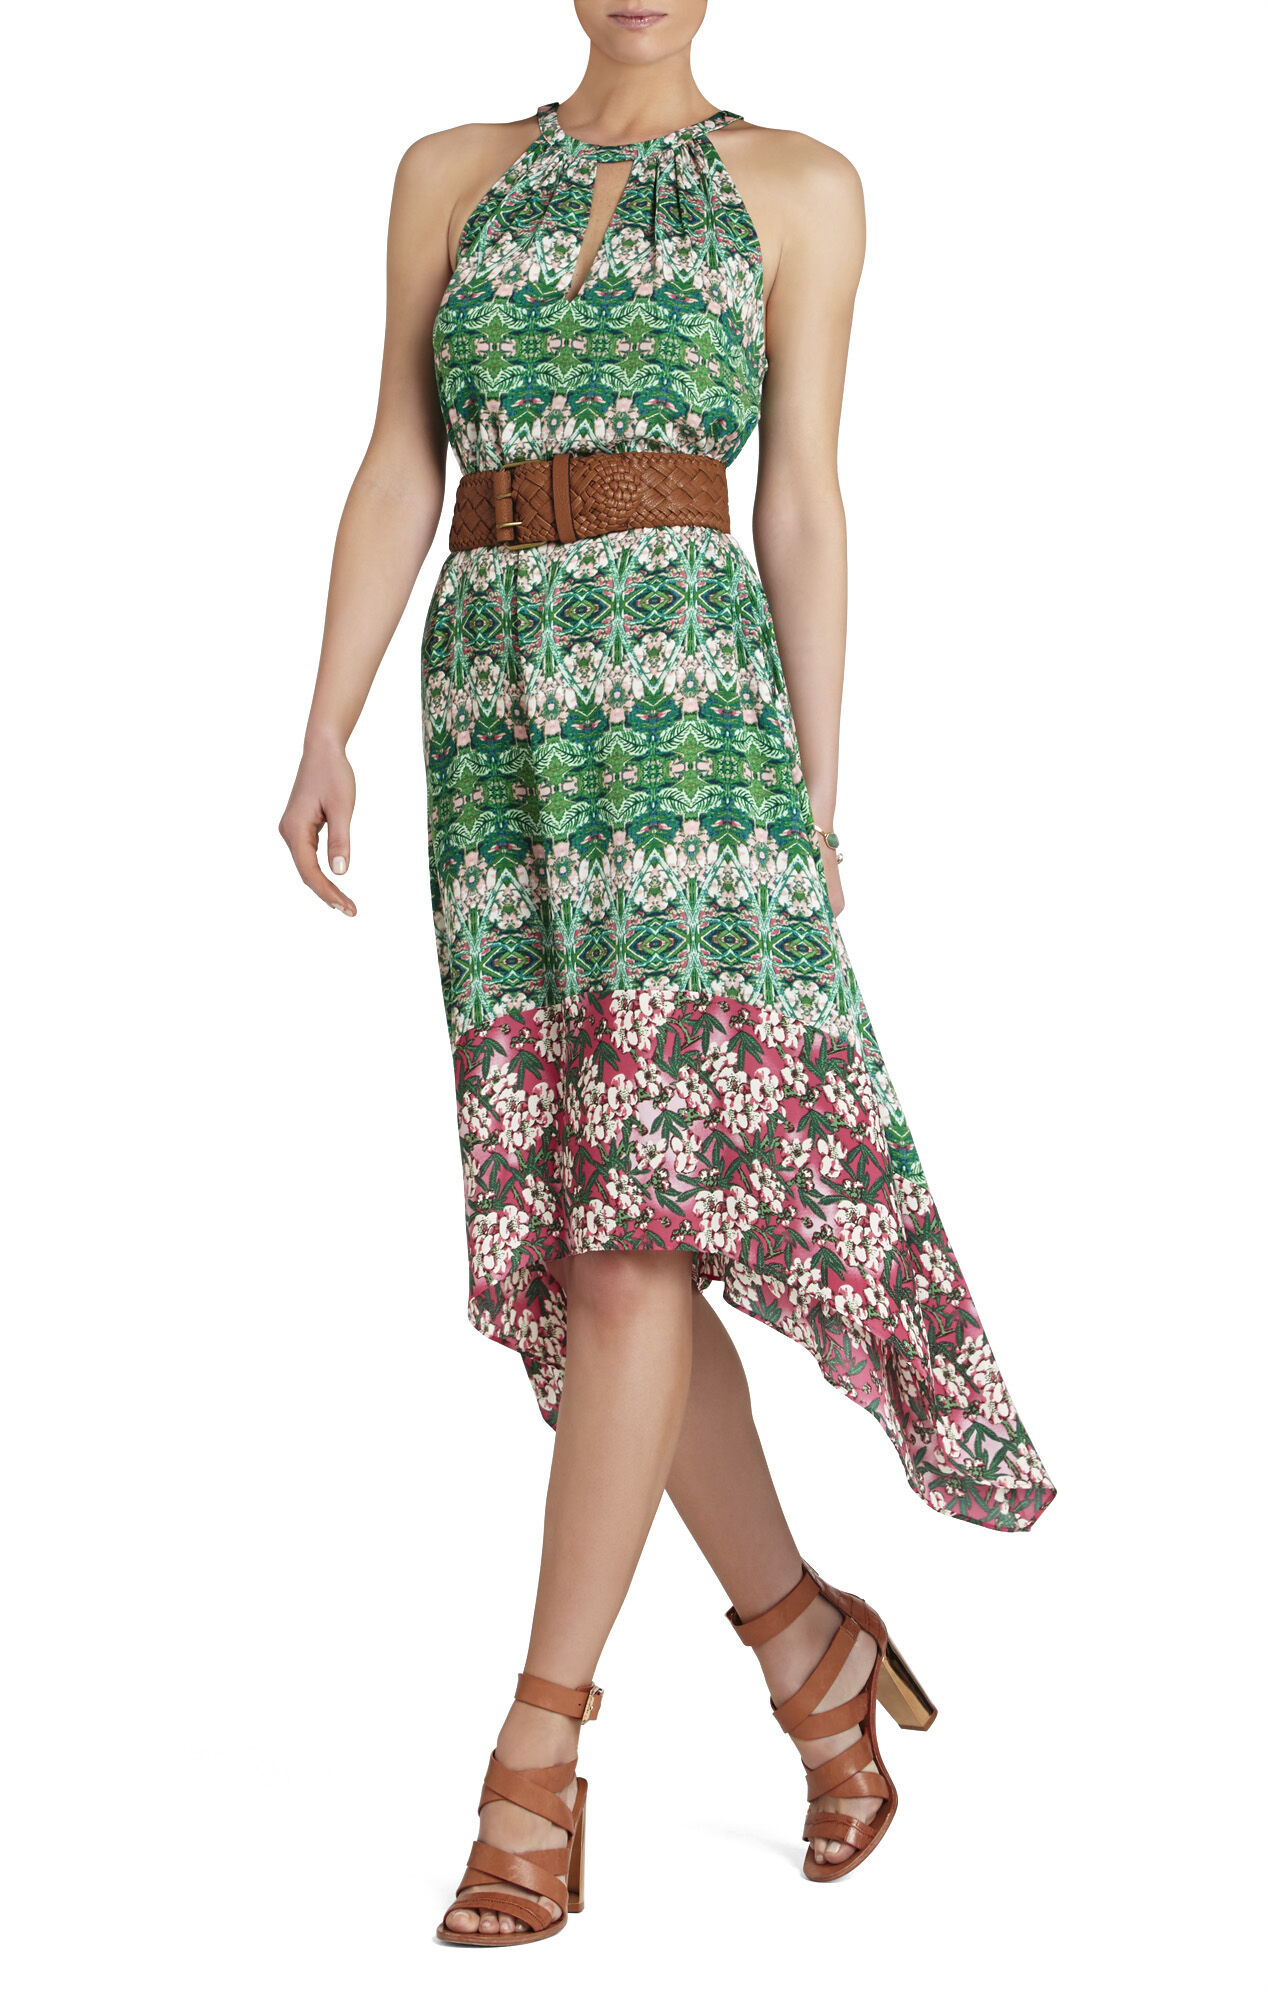 Keelie Blocked-Print Halter Dress